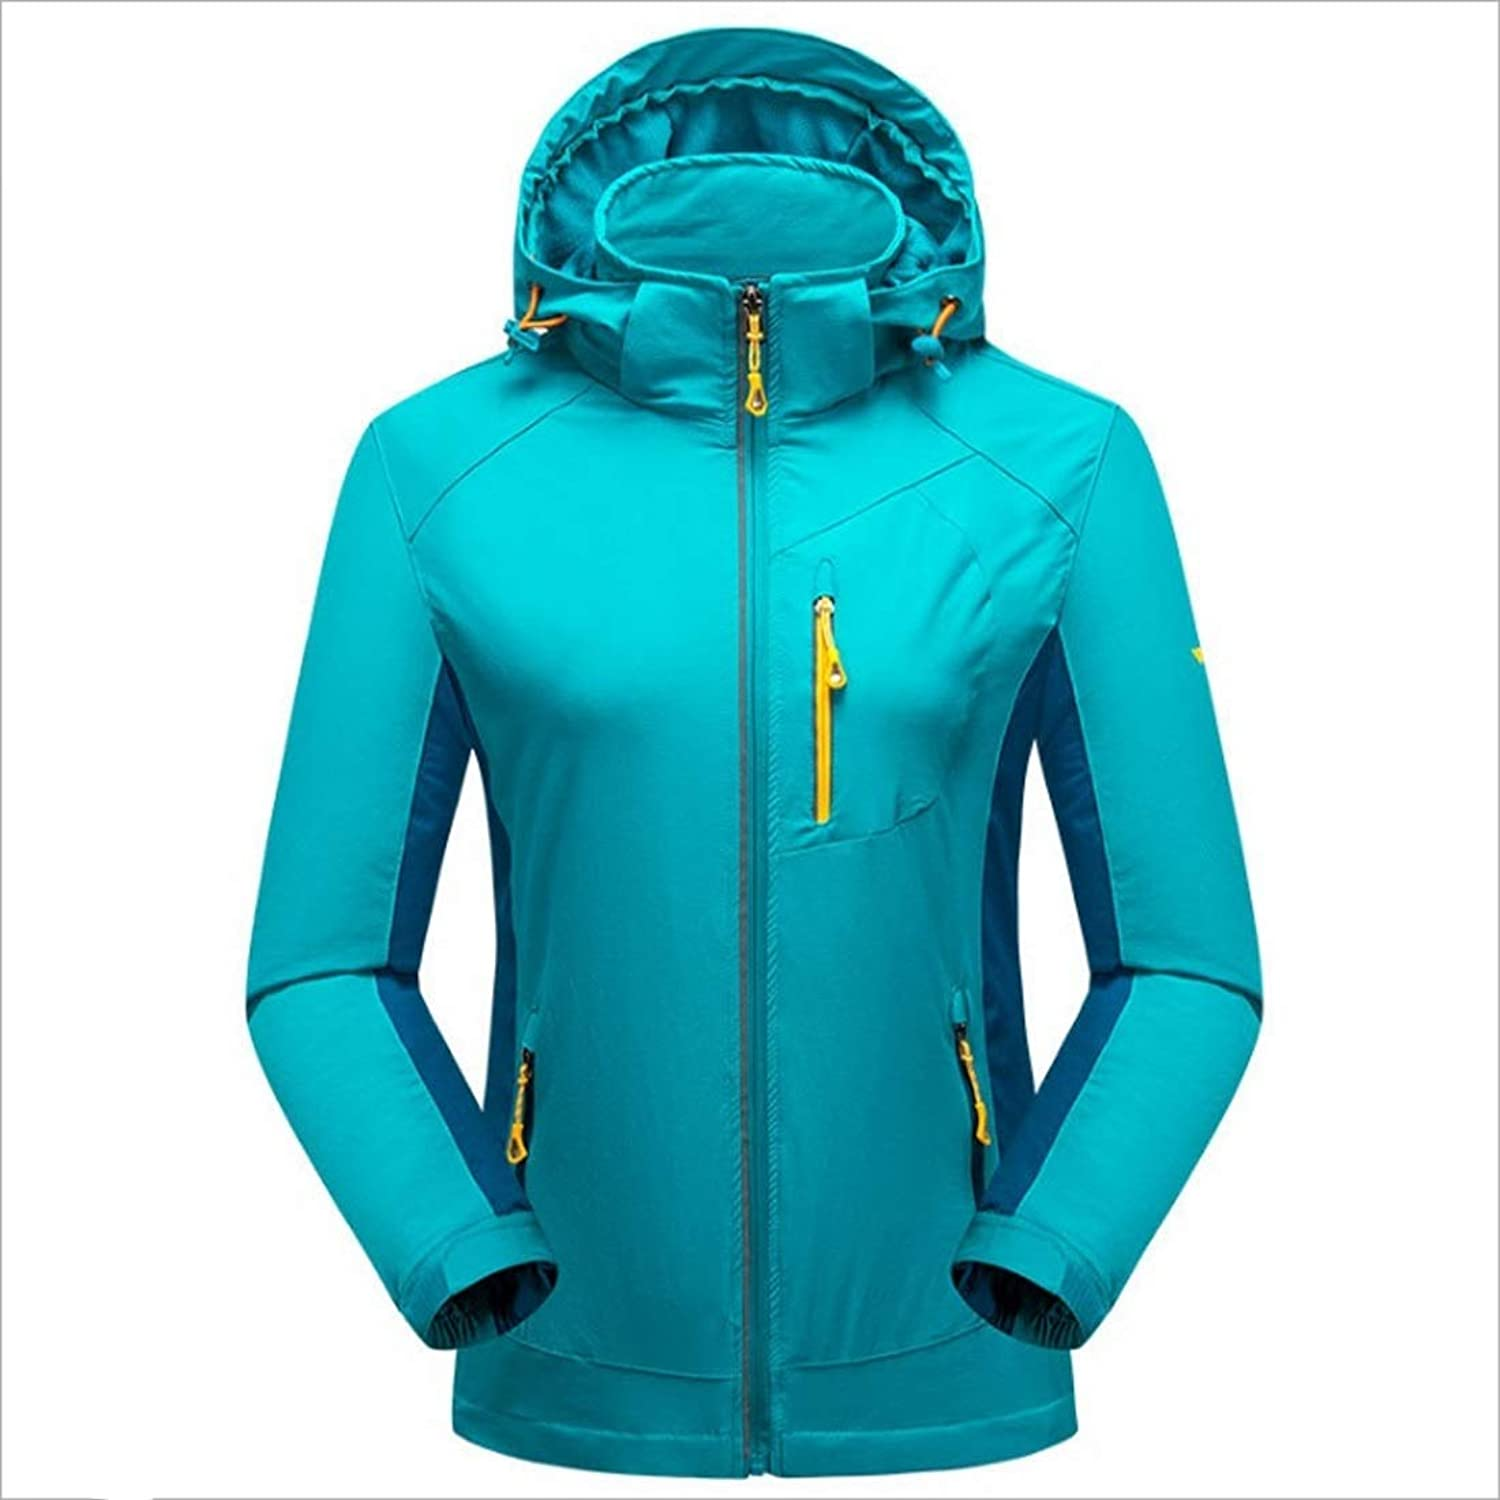 CEFULTY Women's SingleLayered Jacket Elastic Breathable Mountaineering Jacket Thin Waterproof Jacket (color   02, Size   L)